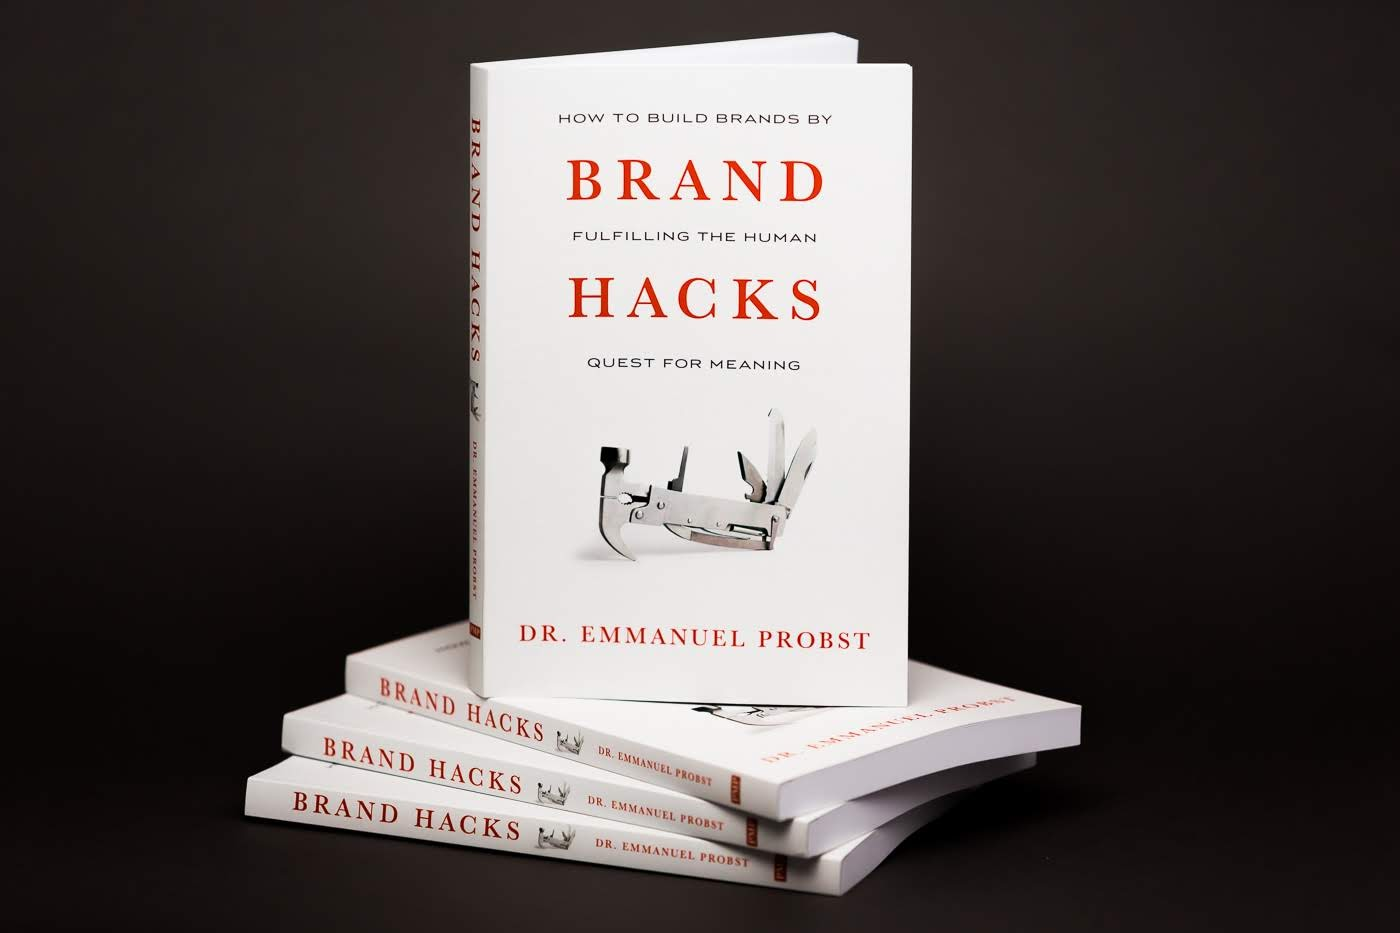 Brand Hacks: The book - Every year, brands spend over $560 billion (and counting) to convince us to buy their products. Yet, as consumers we have become insensitive to most advertising. We easily forget brands and may switch to another product on a whim.There are ways for brandsto break this cycle.